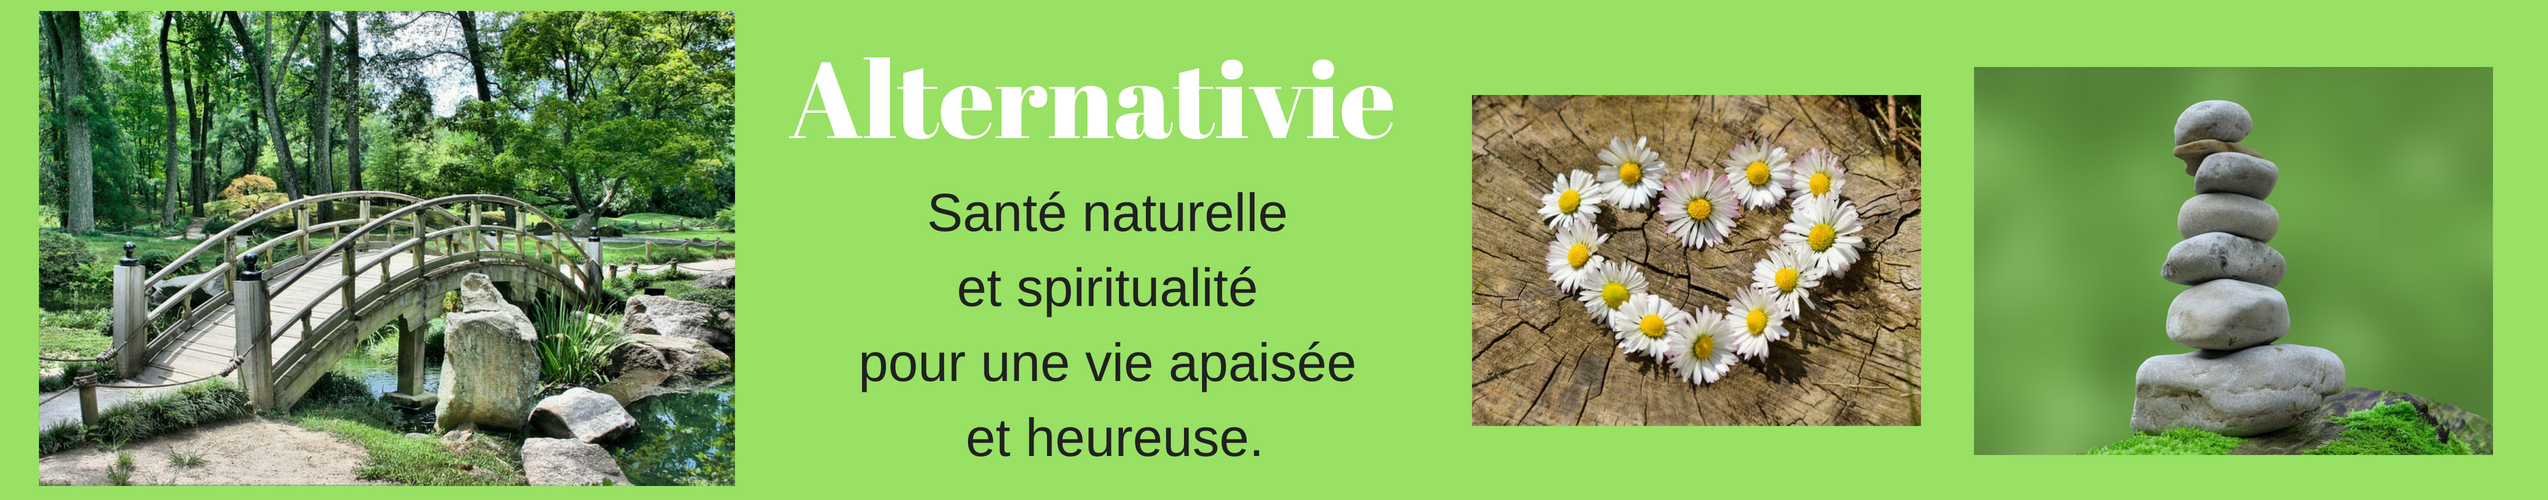 Alternativie, des choix alternatifs